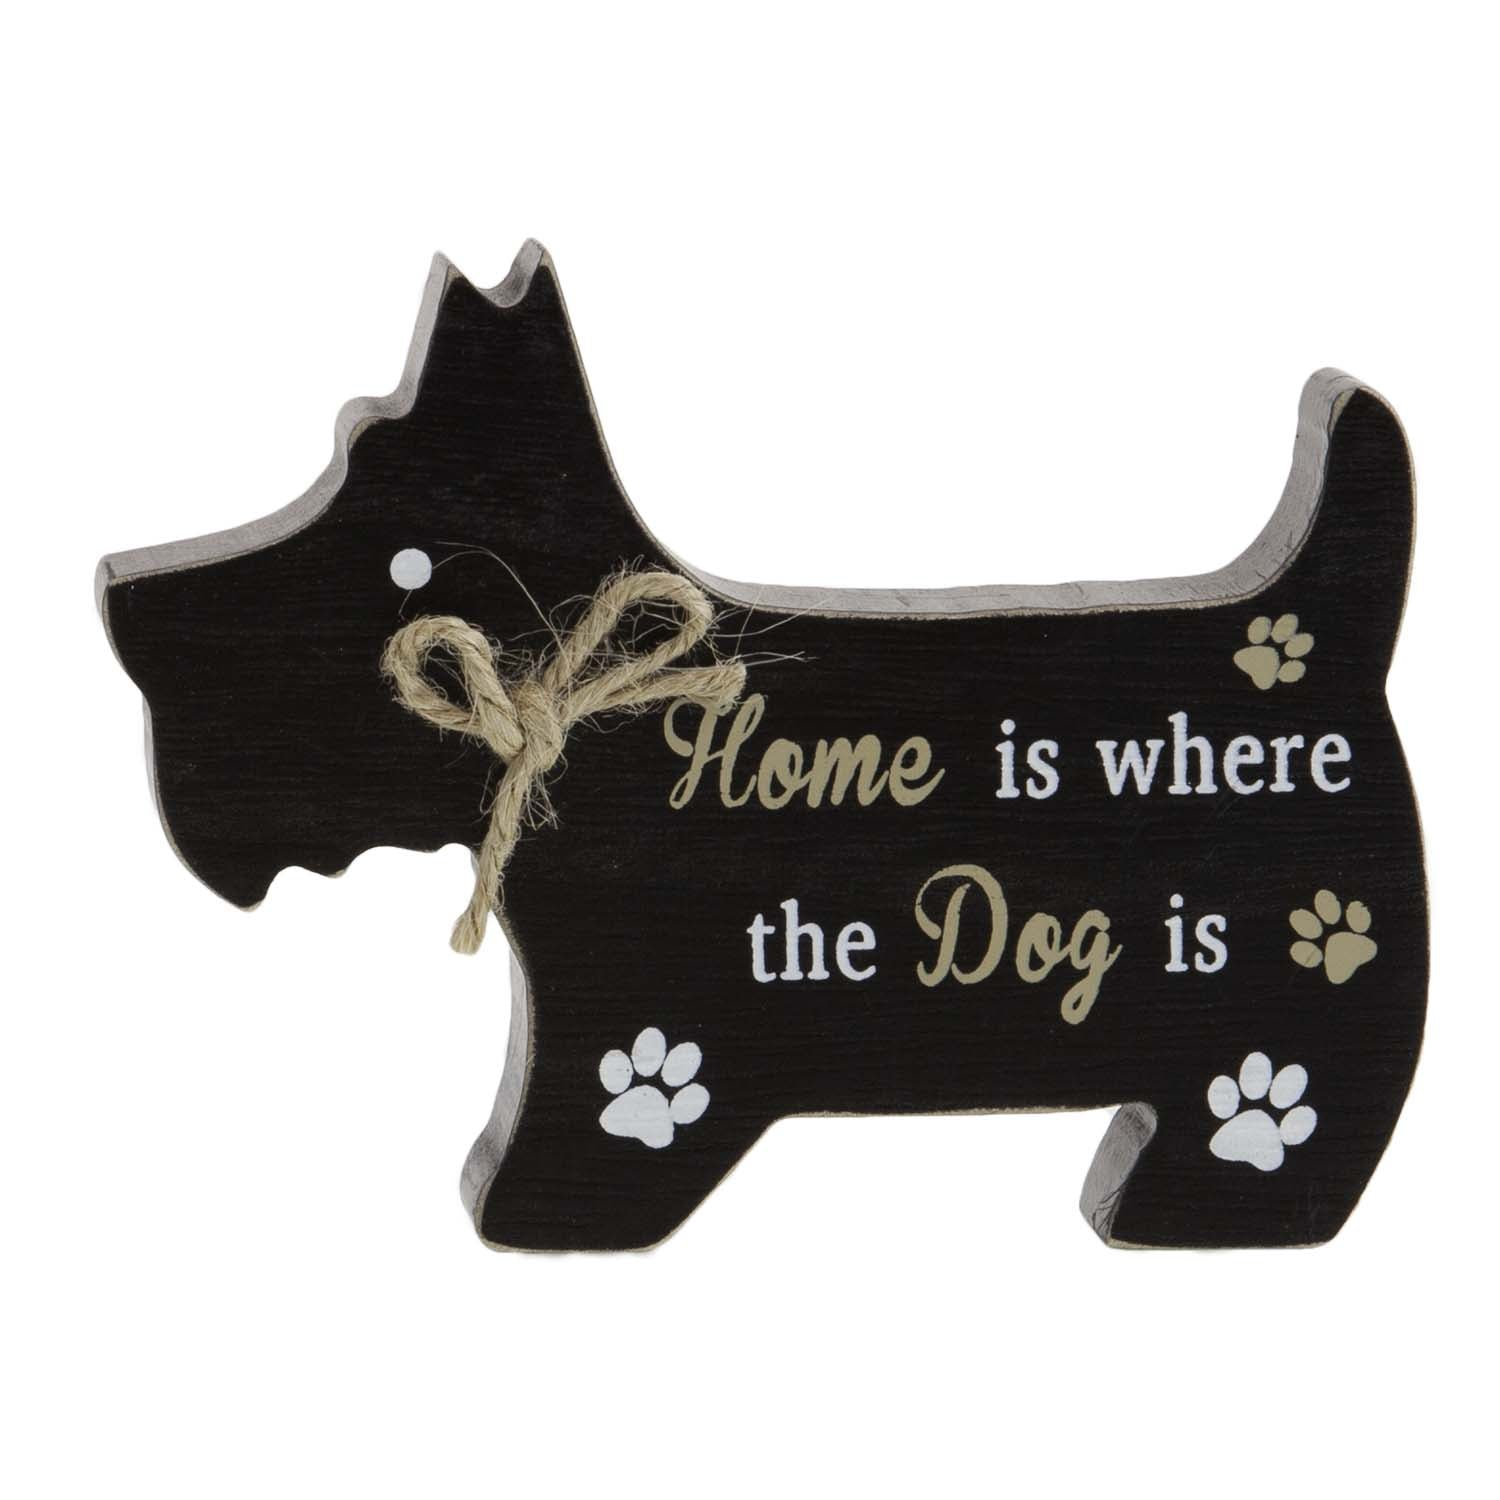 Dog Lover Gifts available at Dog Krazy Gifts – Westie Standing Dog Sign, Home is Where the Dog is, Just Part Of Our Collection Of Signs Available At www.dogkrazygifts.co.uk